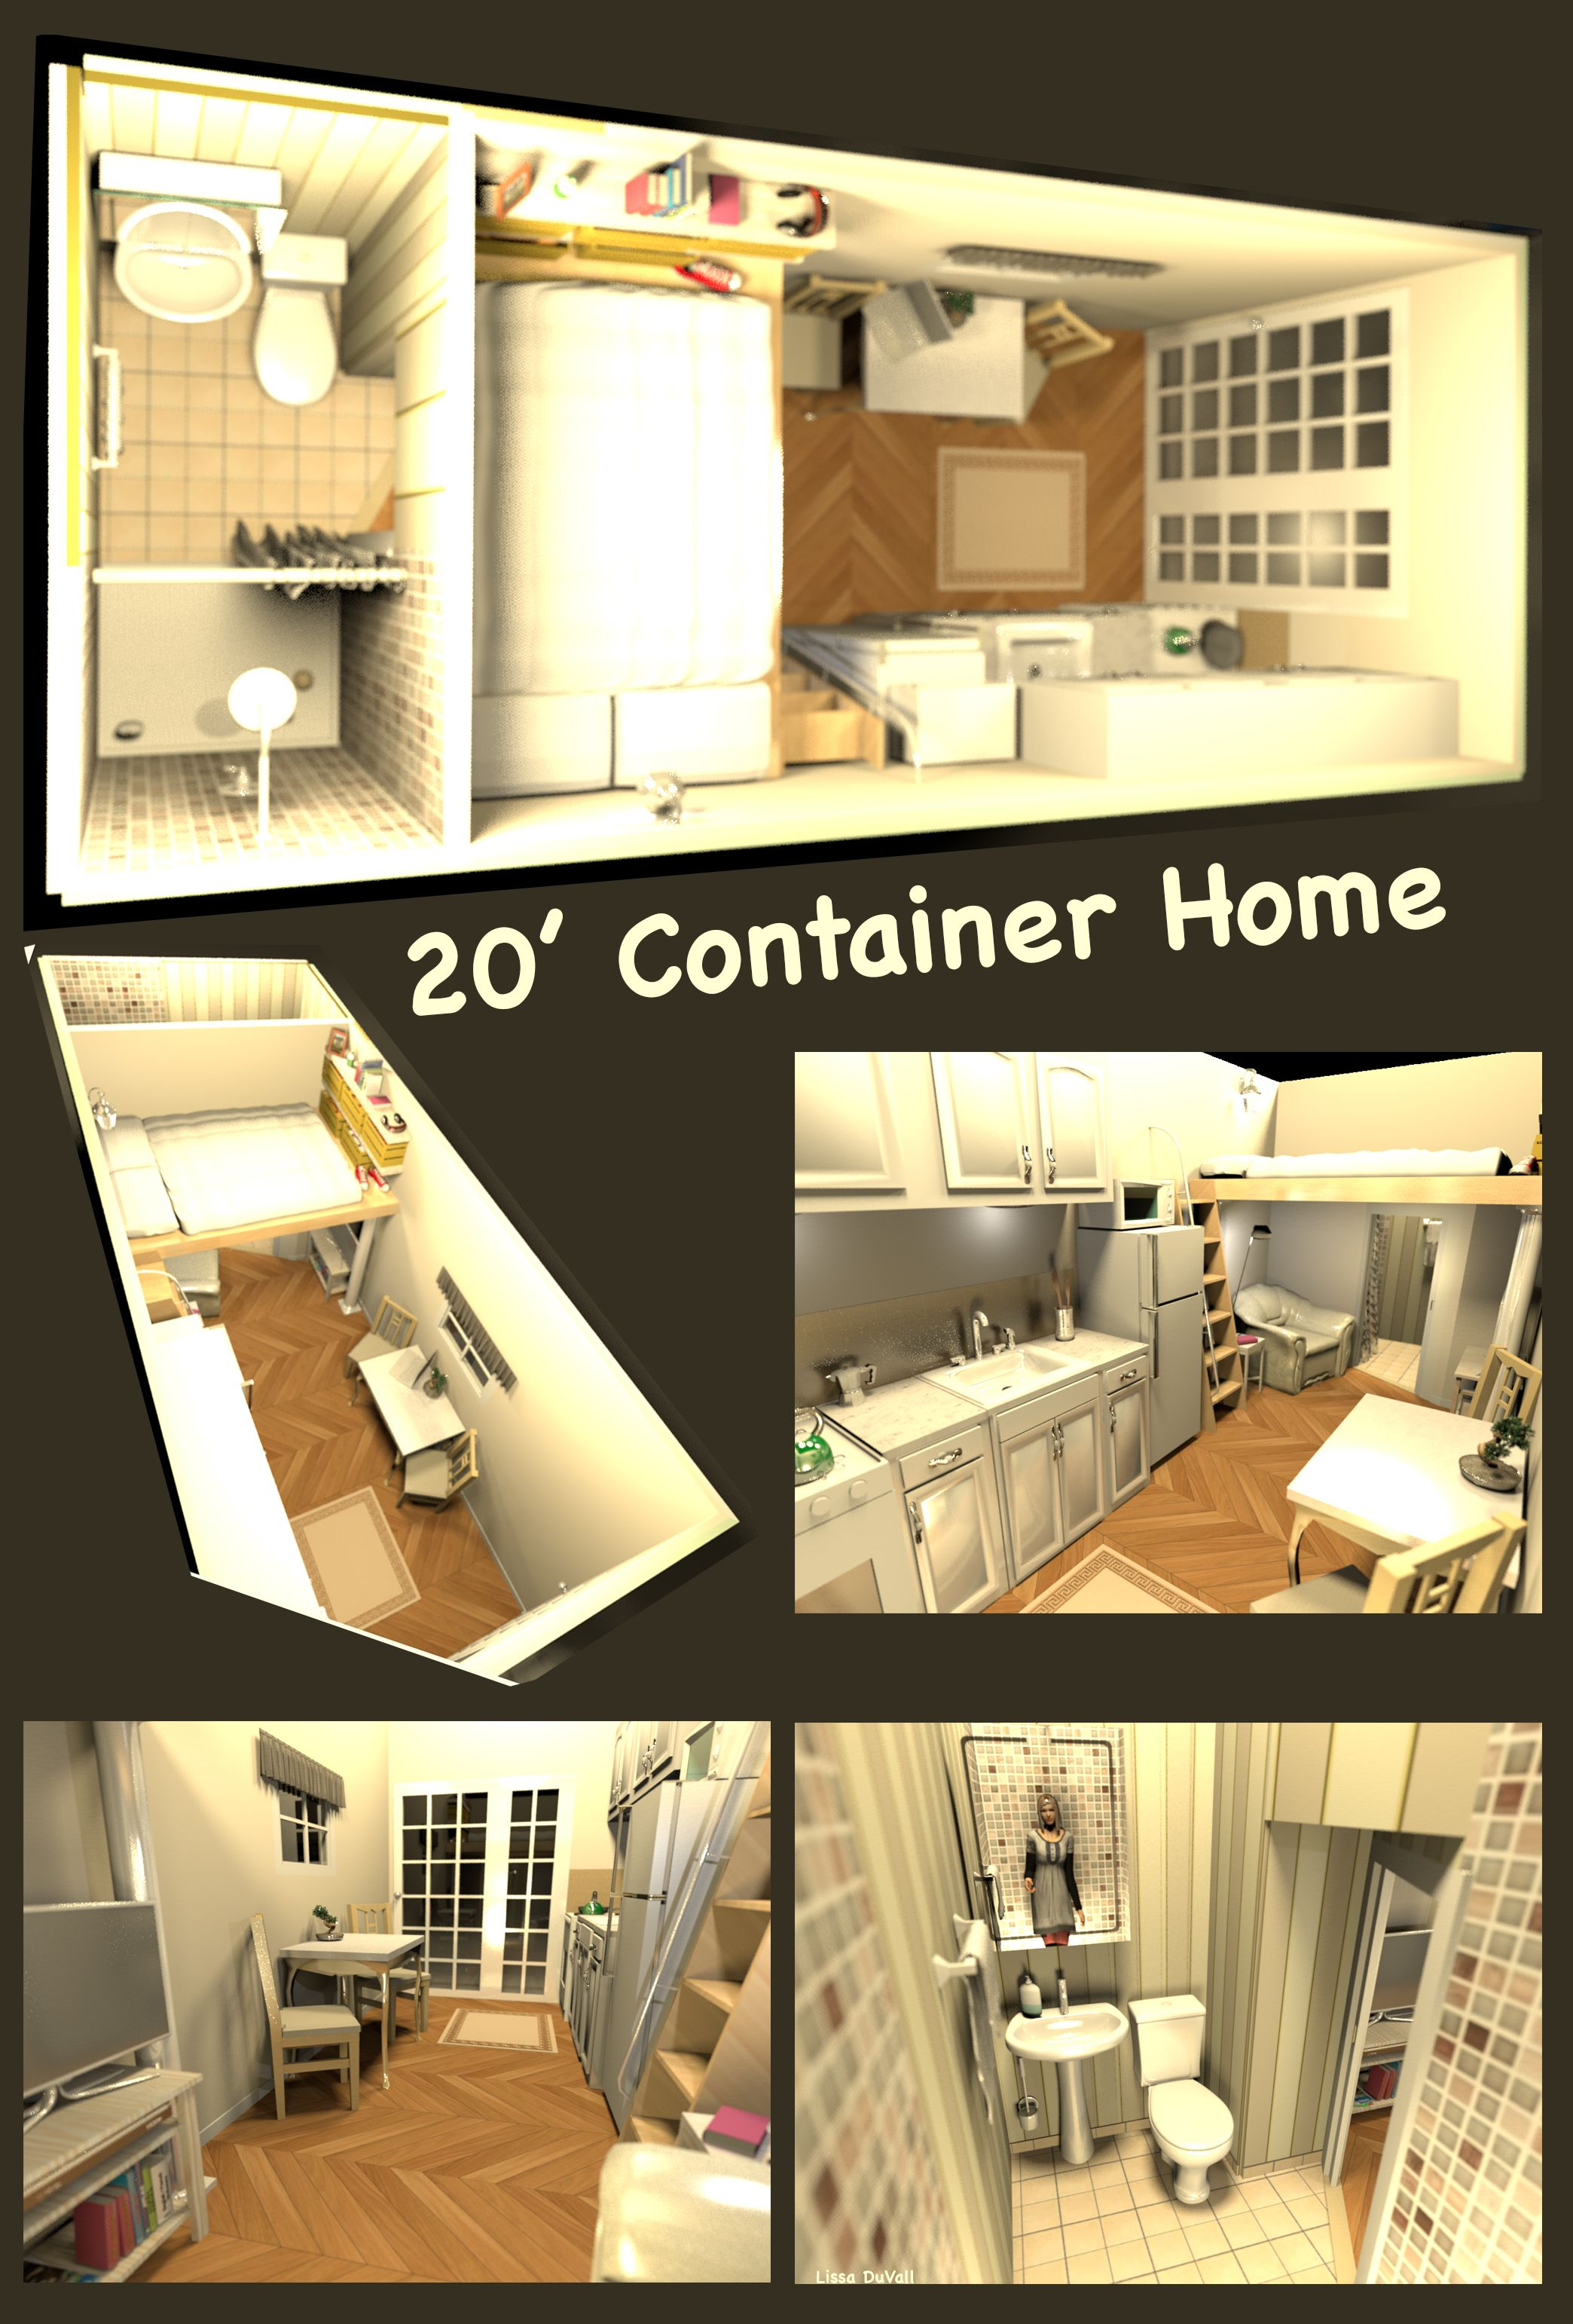 20 X8 Container Home Full Size Bed A Very Space Efficient Floor Plan For A Container Home Container House Small House Floor Plans Container House Interior